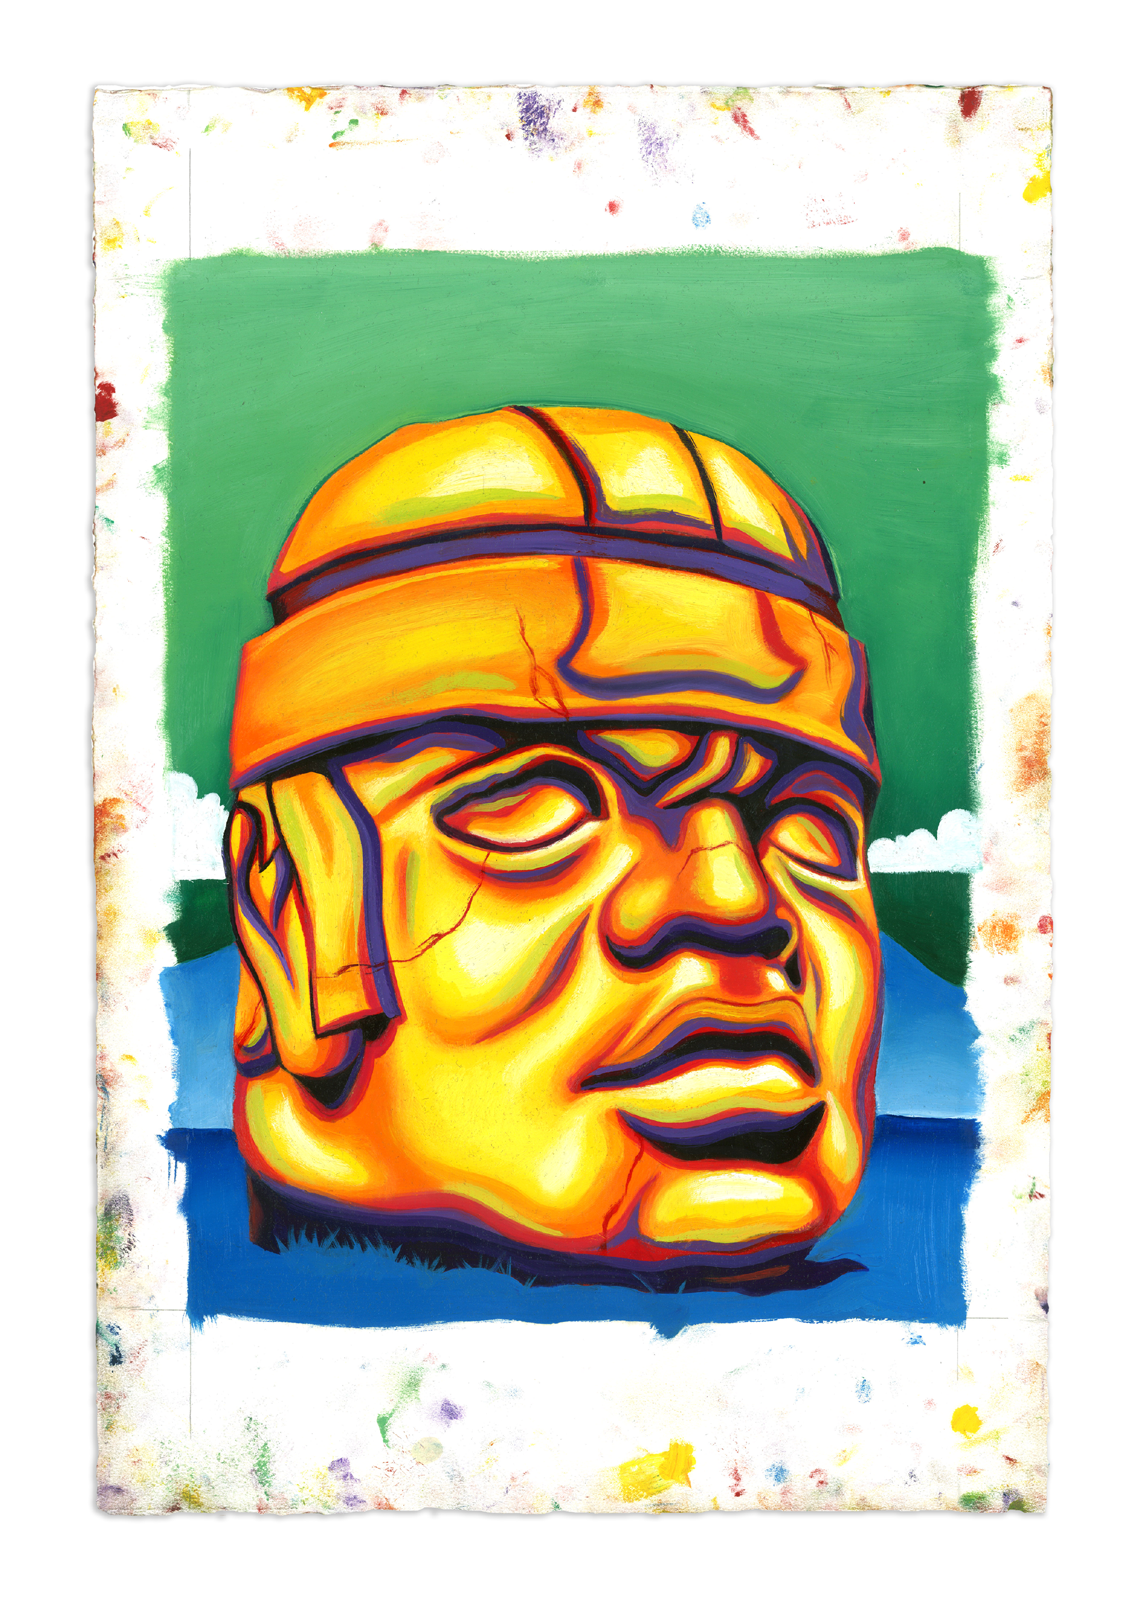 Olmec - Oil at 12 x 16 in. on 22 x 15 in. BFK Rives